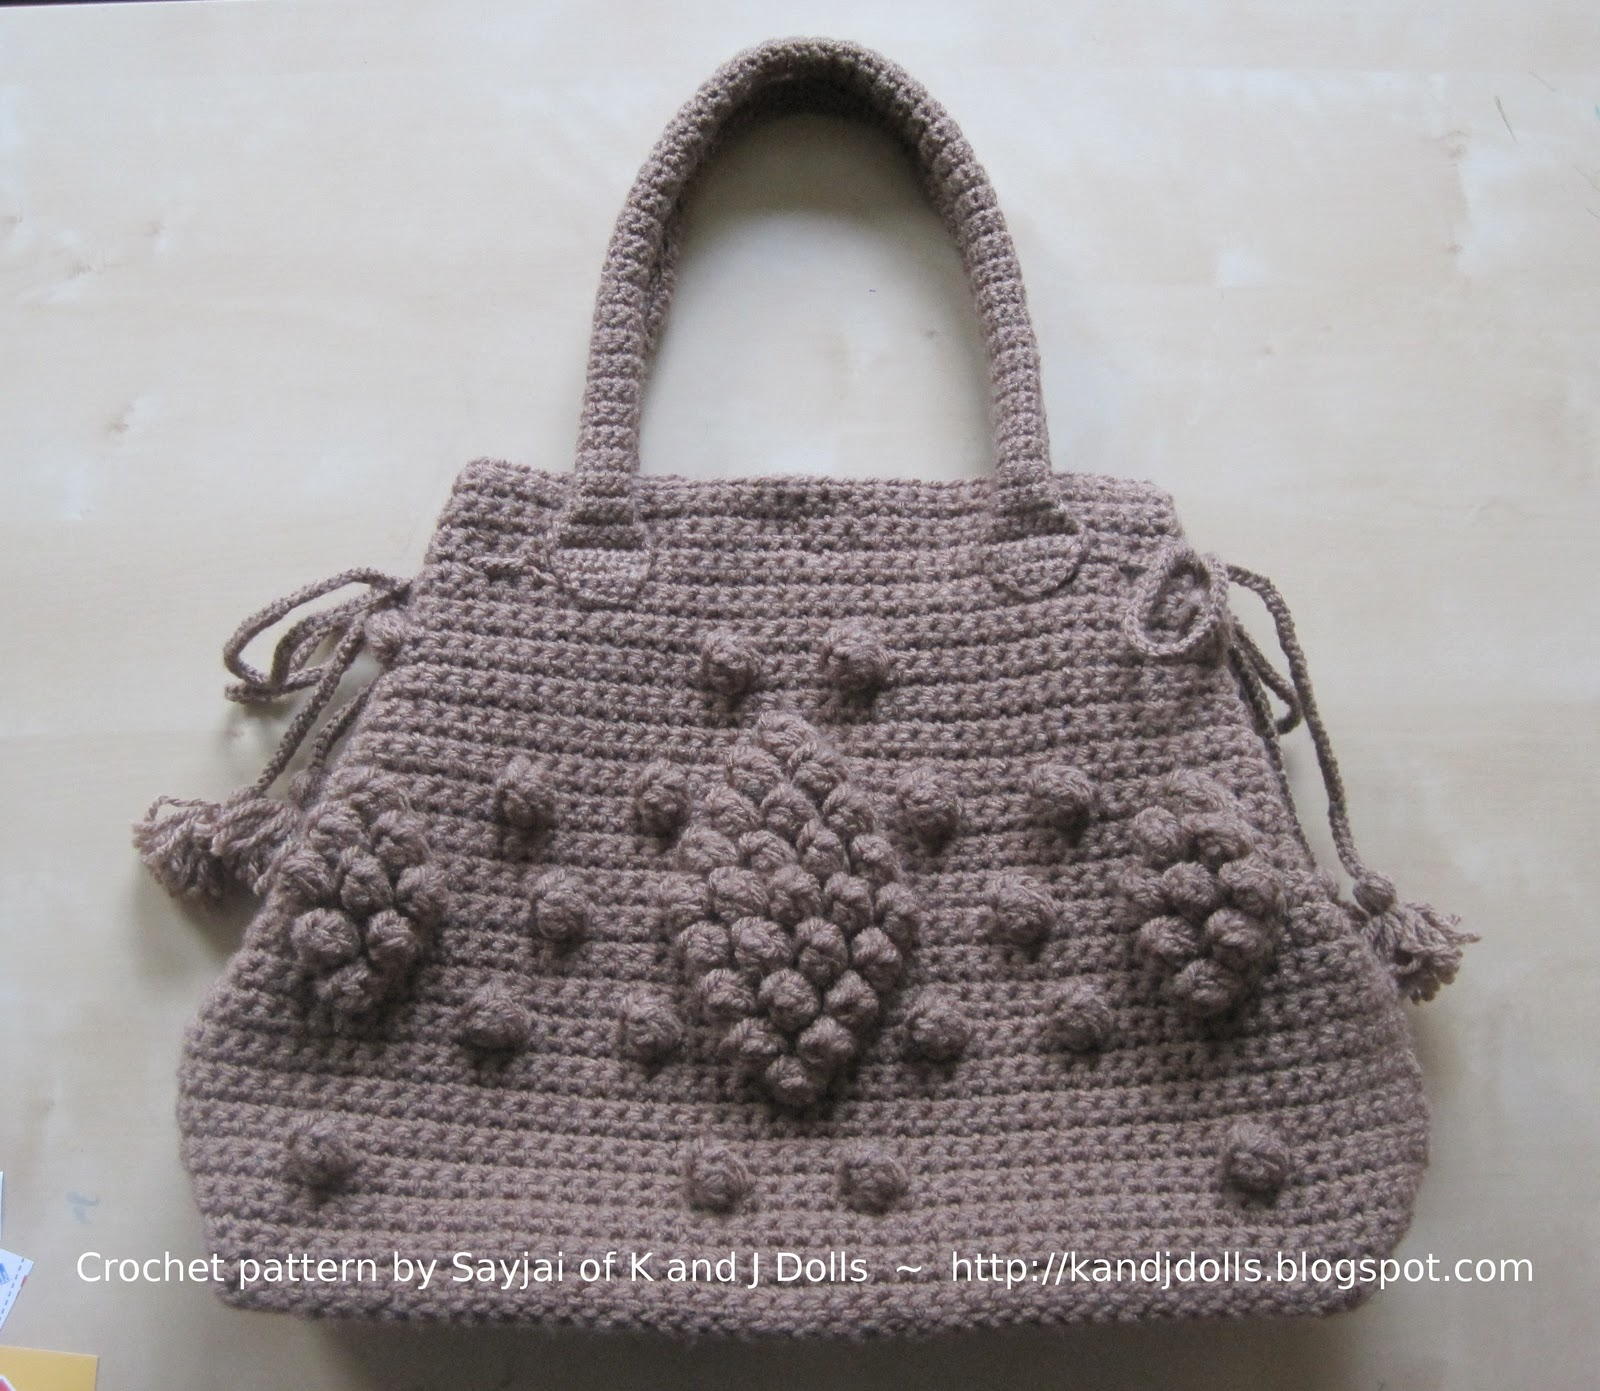 Crochet Satchel Bag Pattern : 2000 Free Amigurumi Patterns: Free Bag crochet pattern